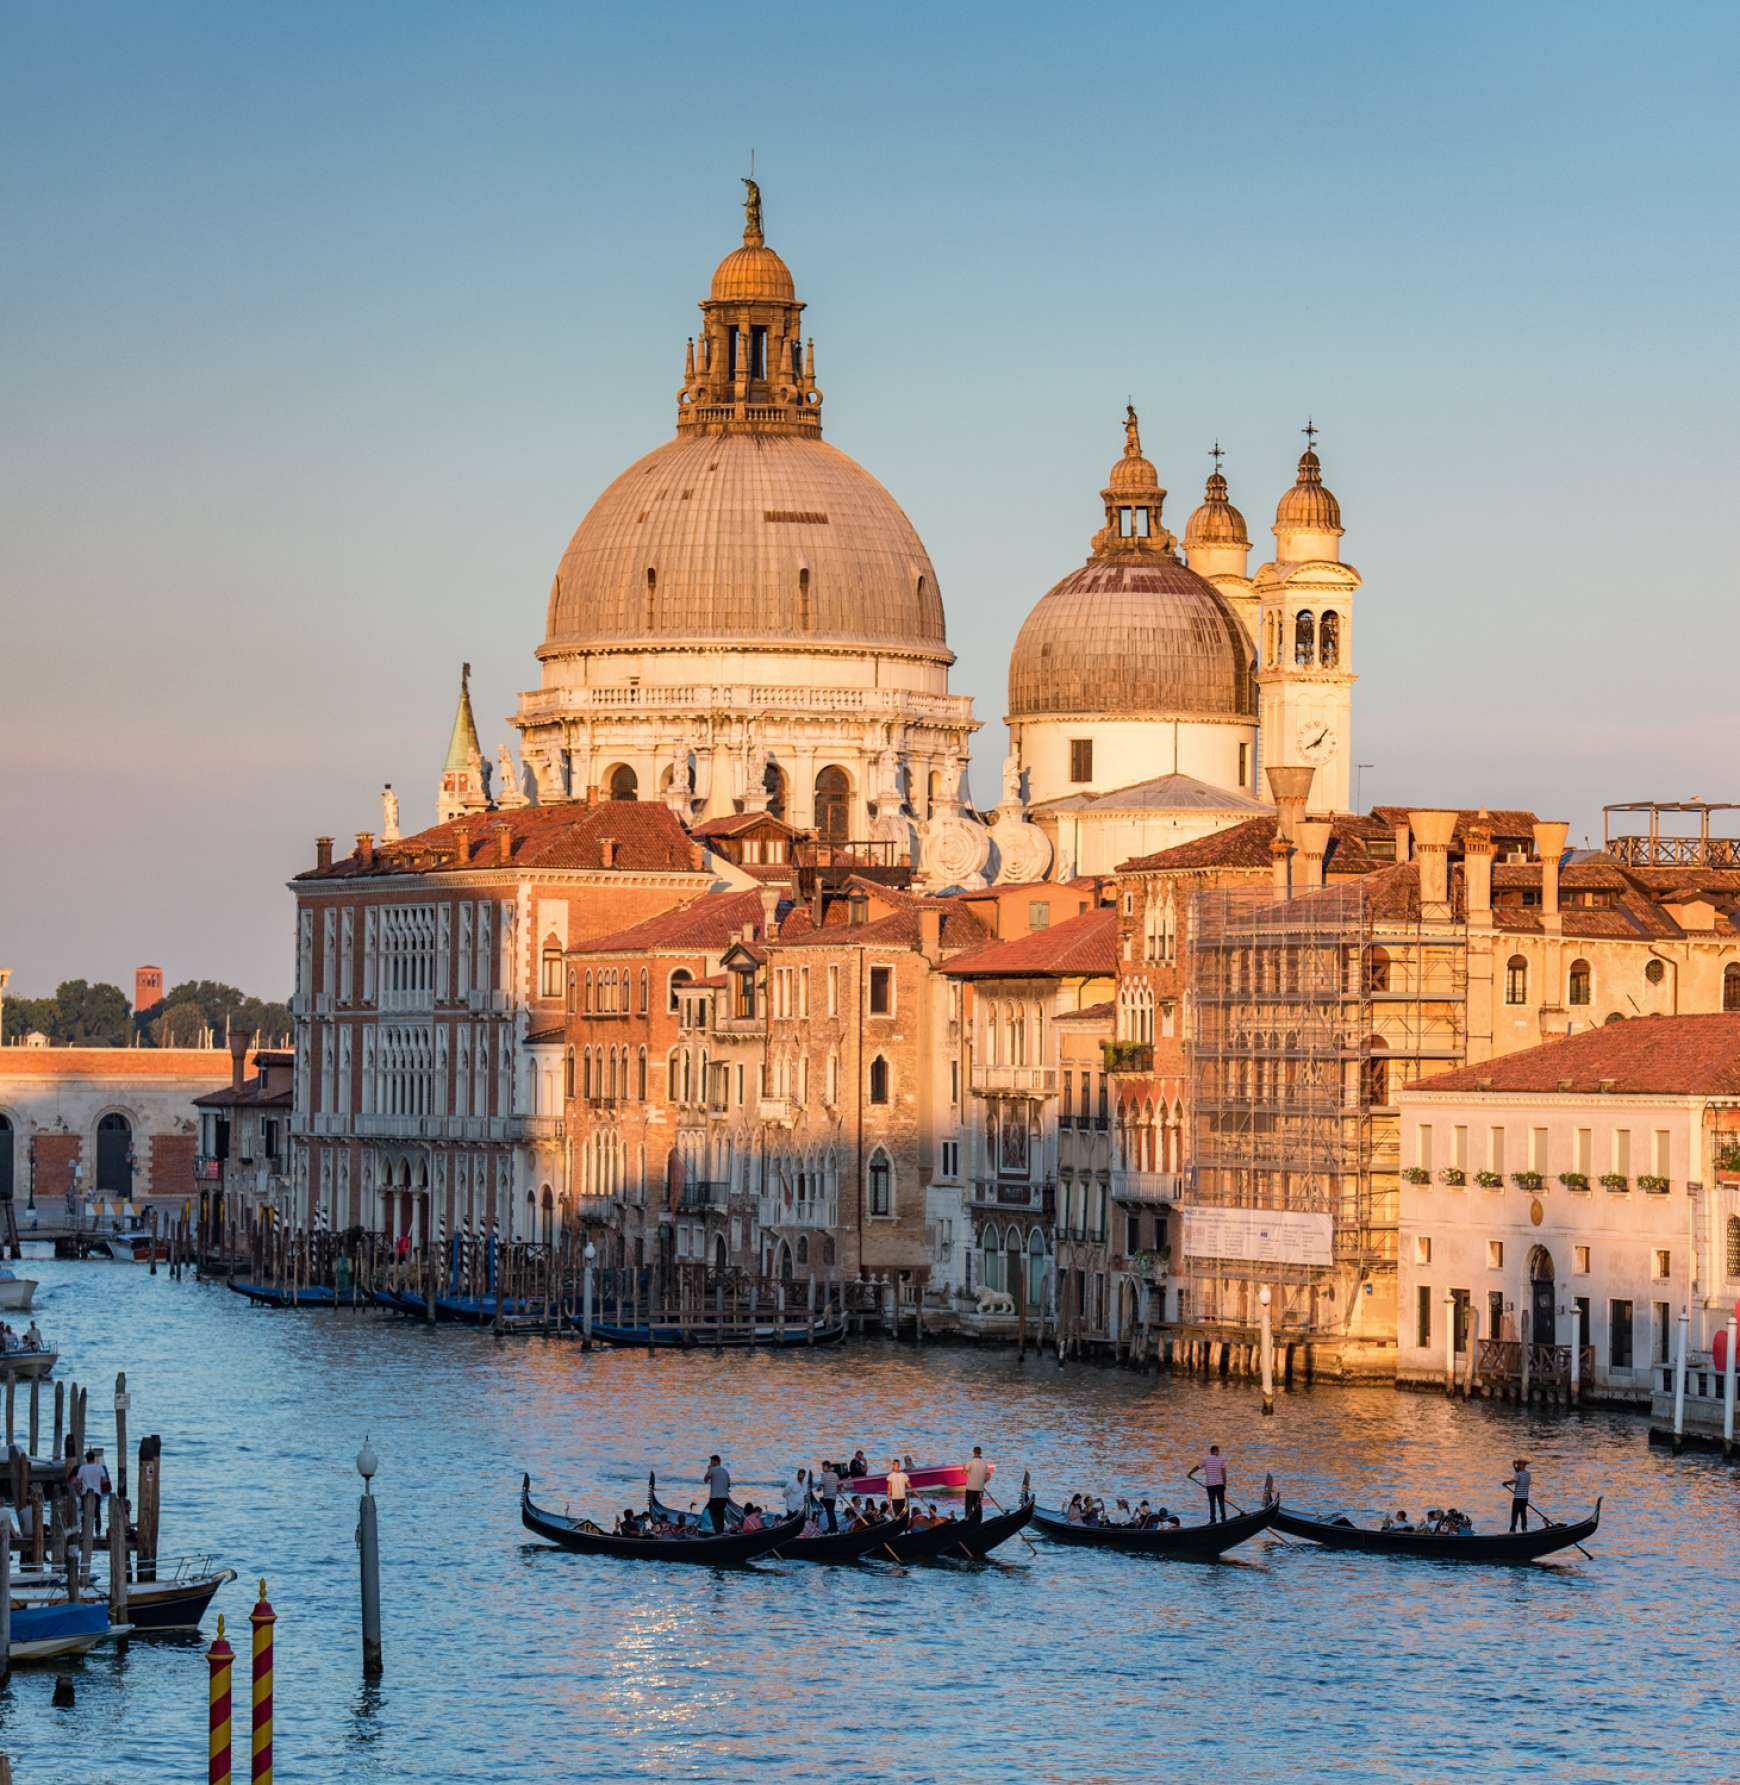 Sunset view of the majestic palaces & villas along the Grand Canal